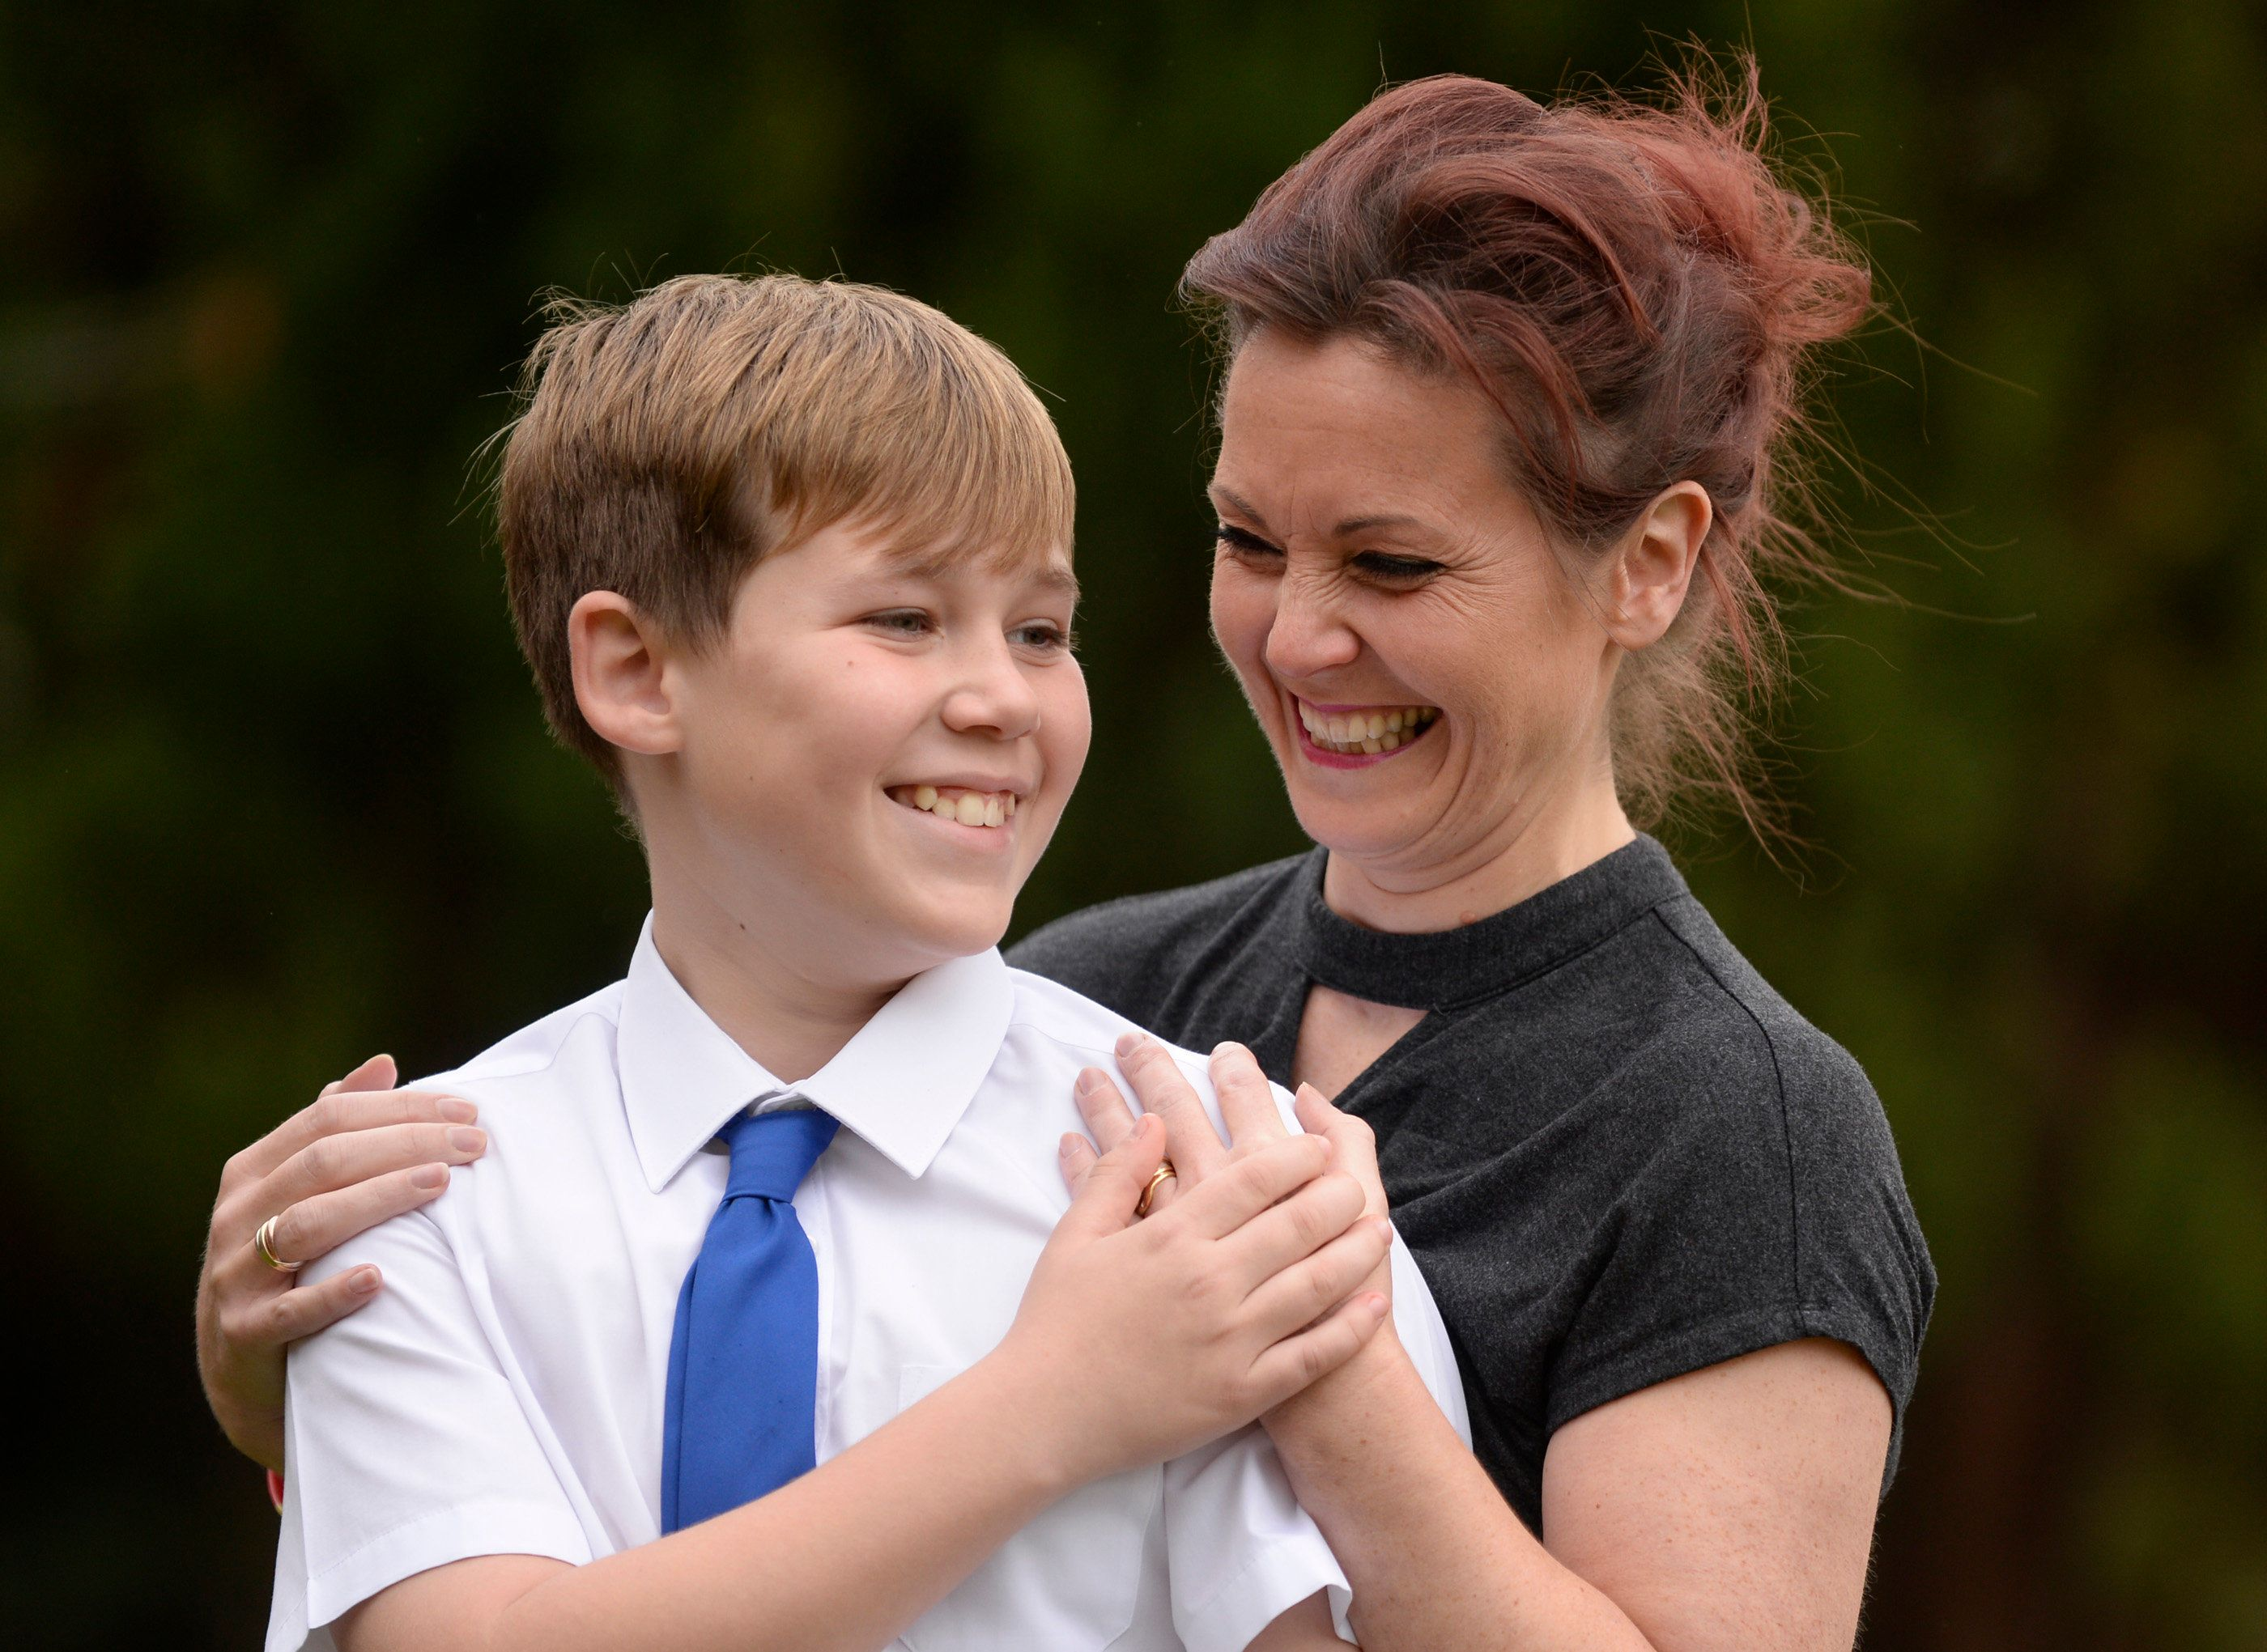 Boy Scarred For Life In Firework Accident Warns Of Dangers This Bonfire